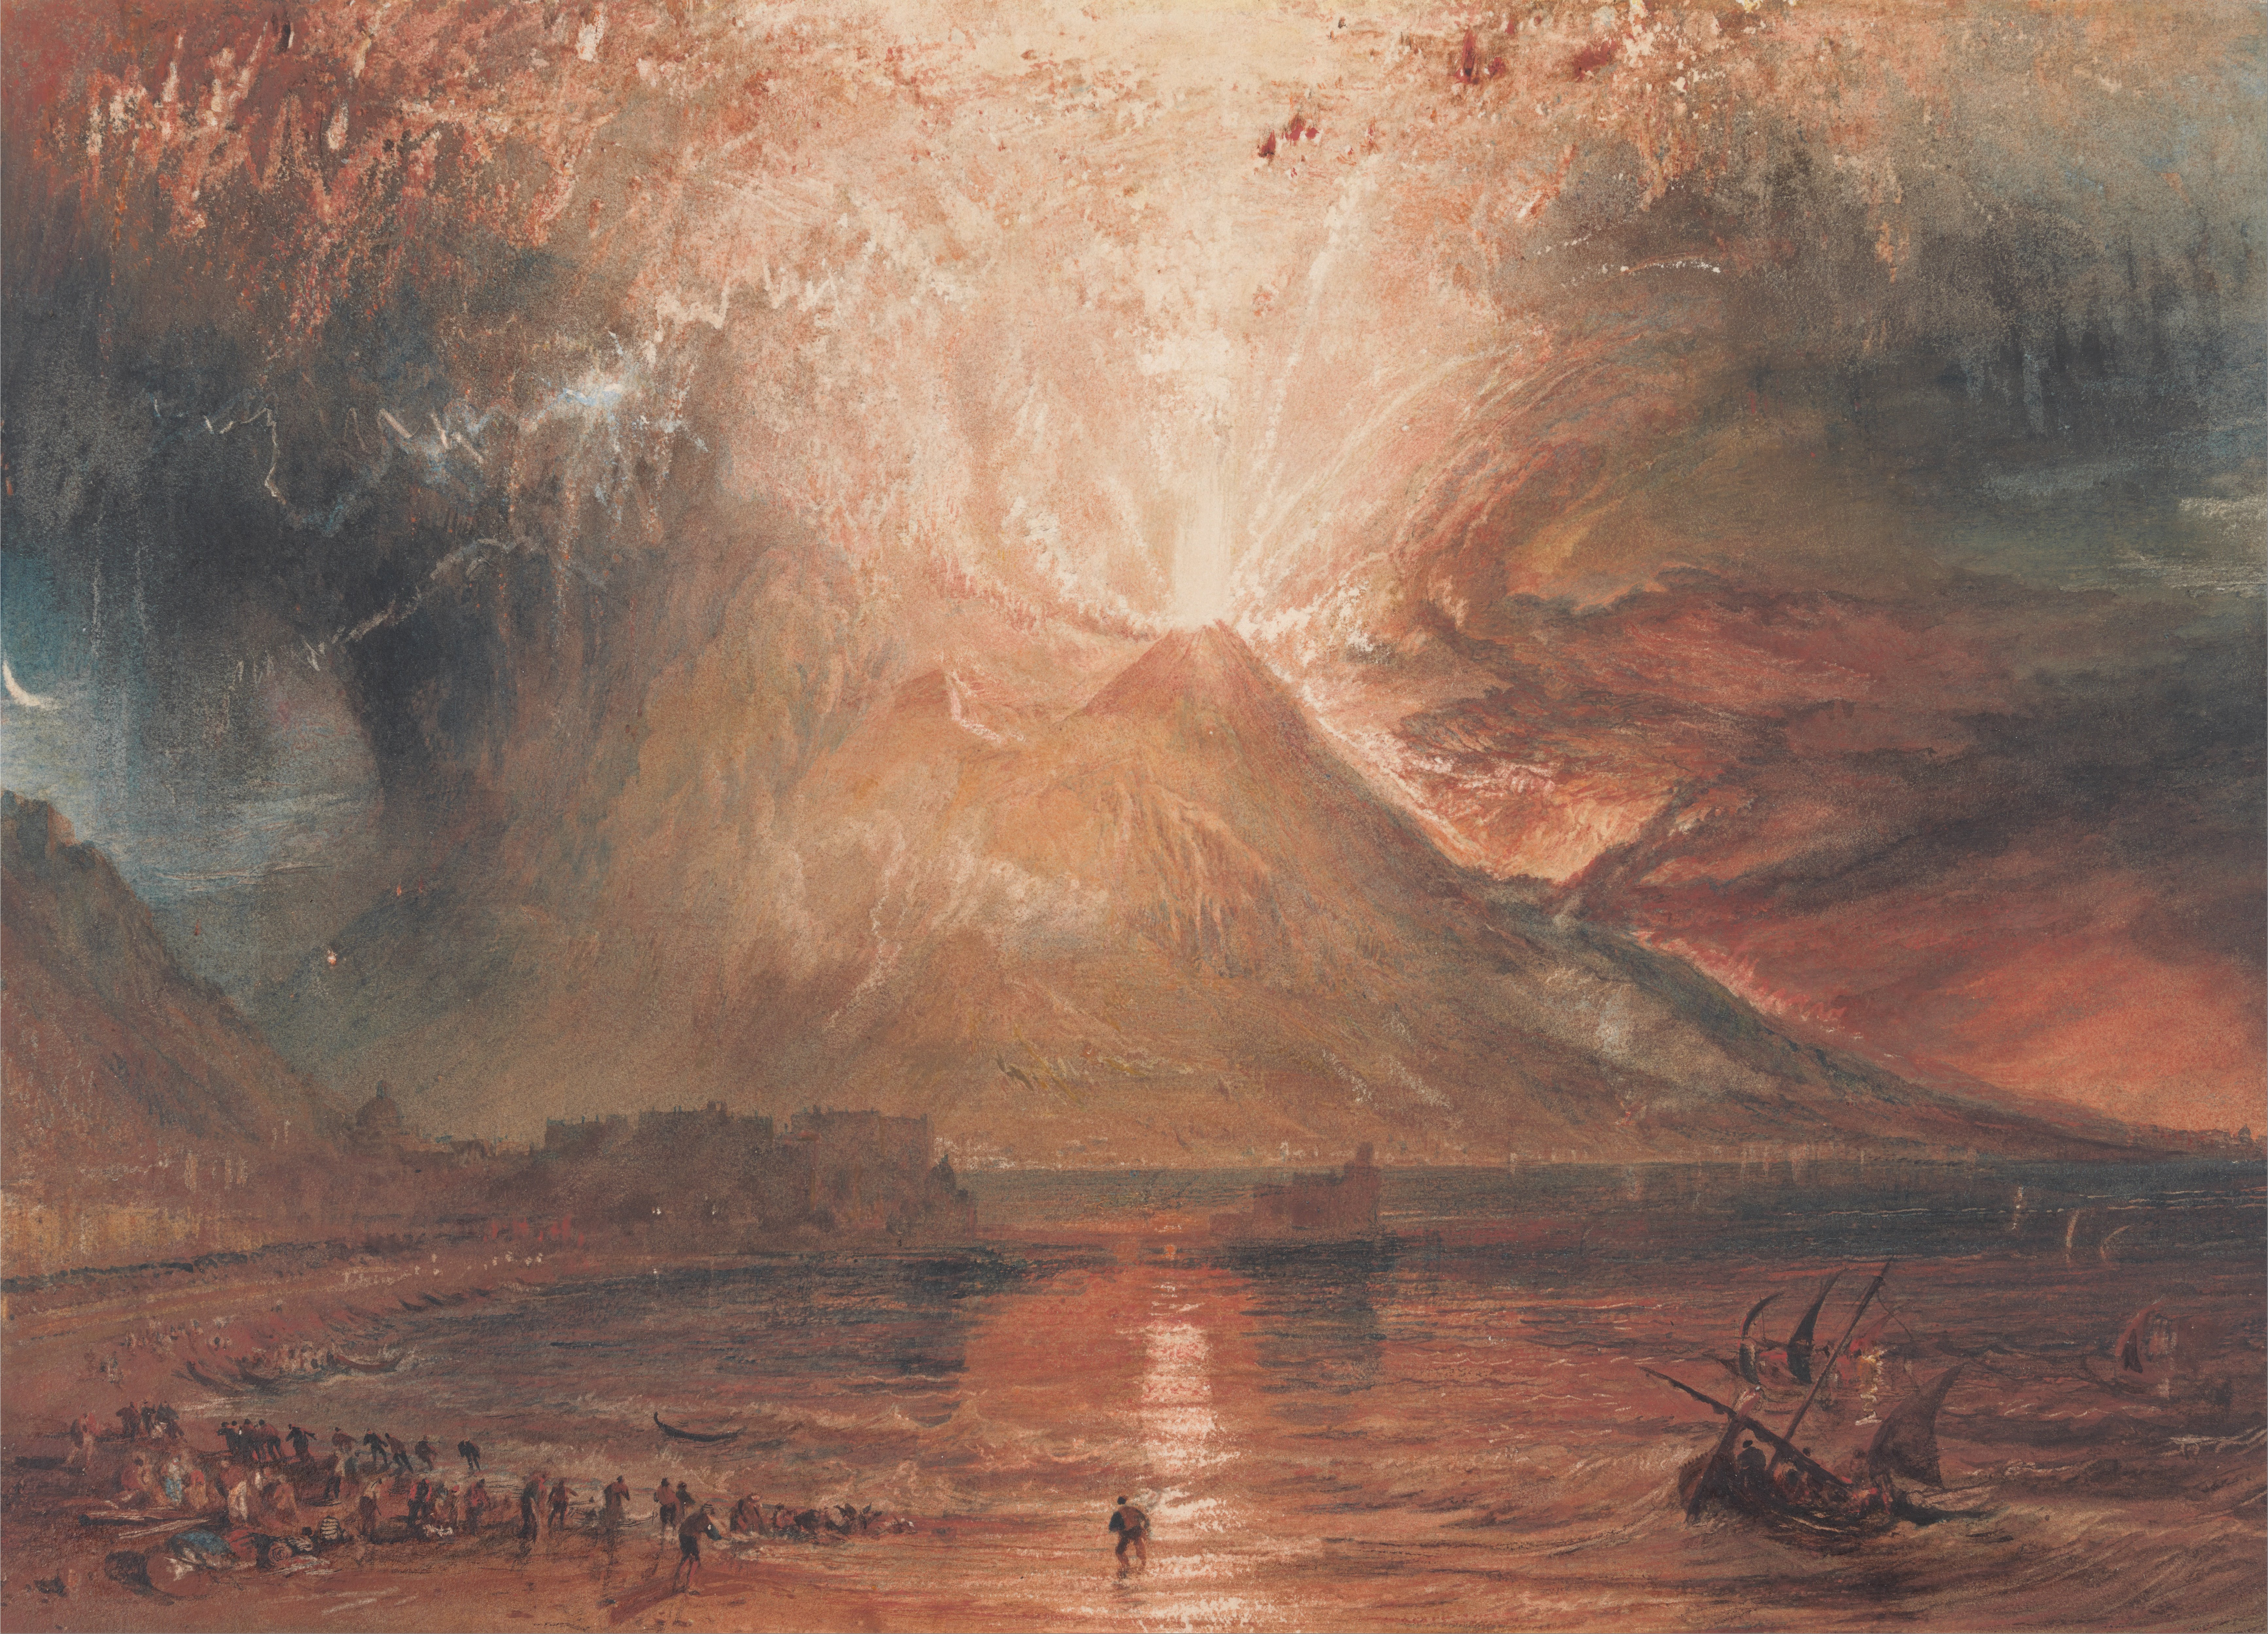 Vesuvius in Eruption, J.M.W. Turner, circa 1817